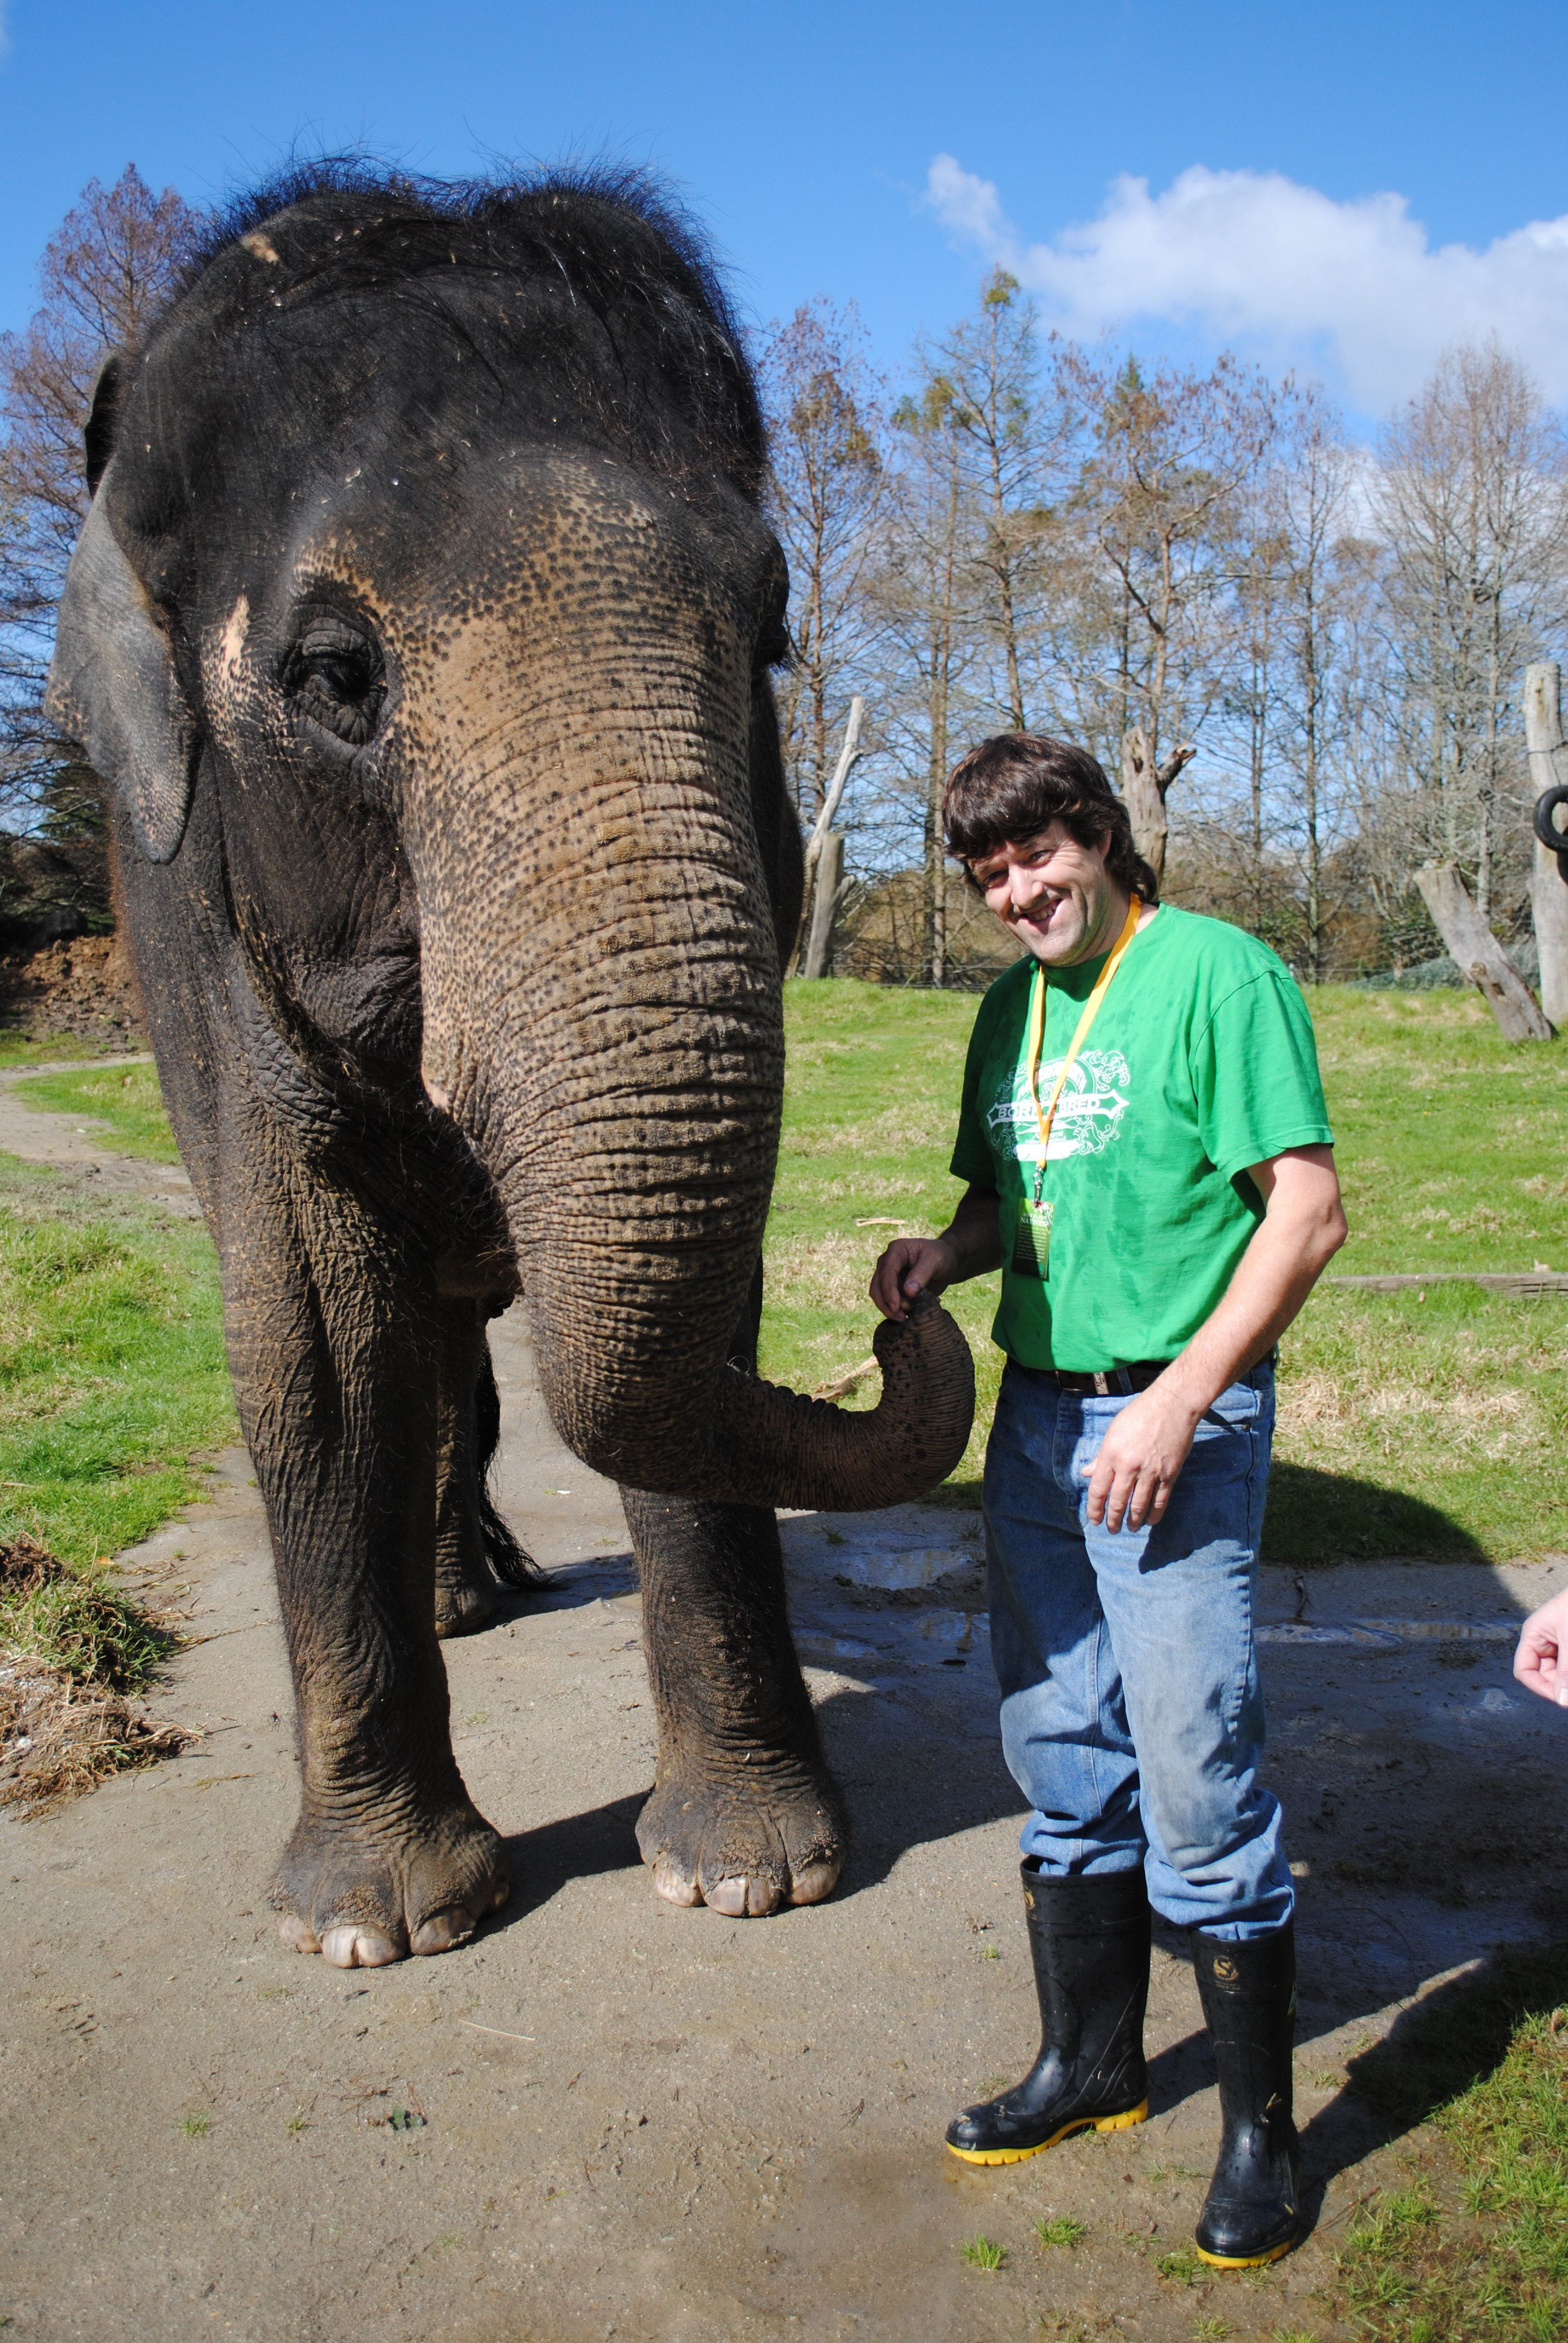 I got to spend two hours with Burma at Auckland Zoo, beautiful elephant and awesome experience...